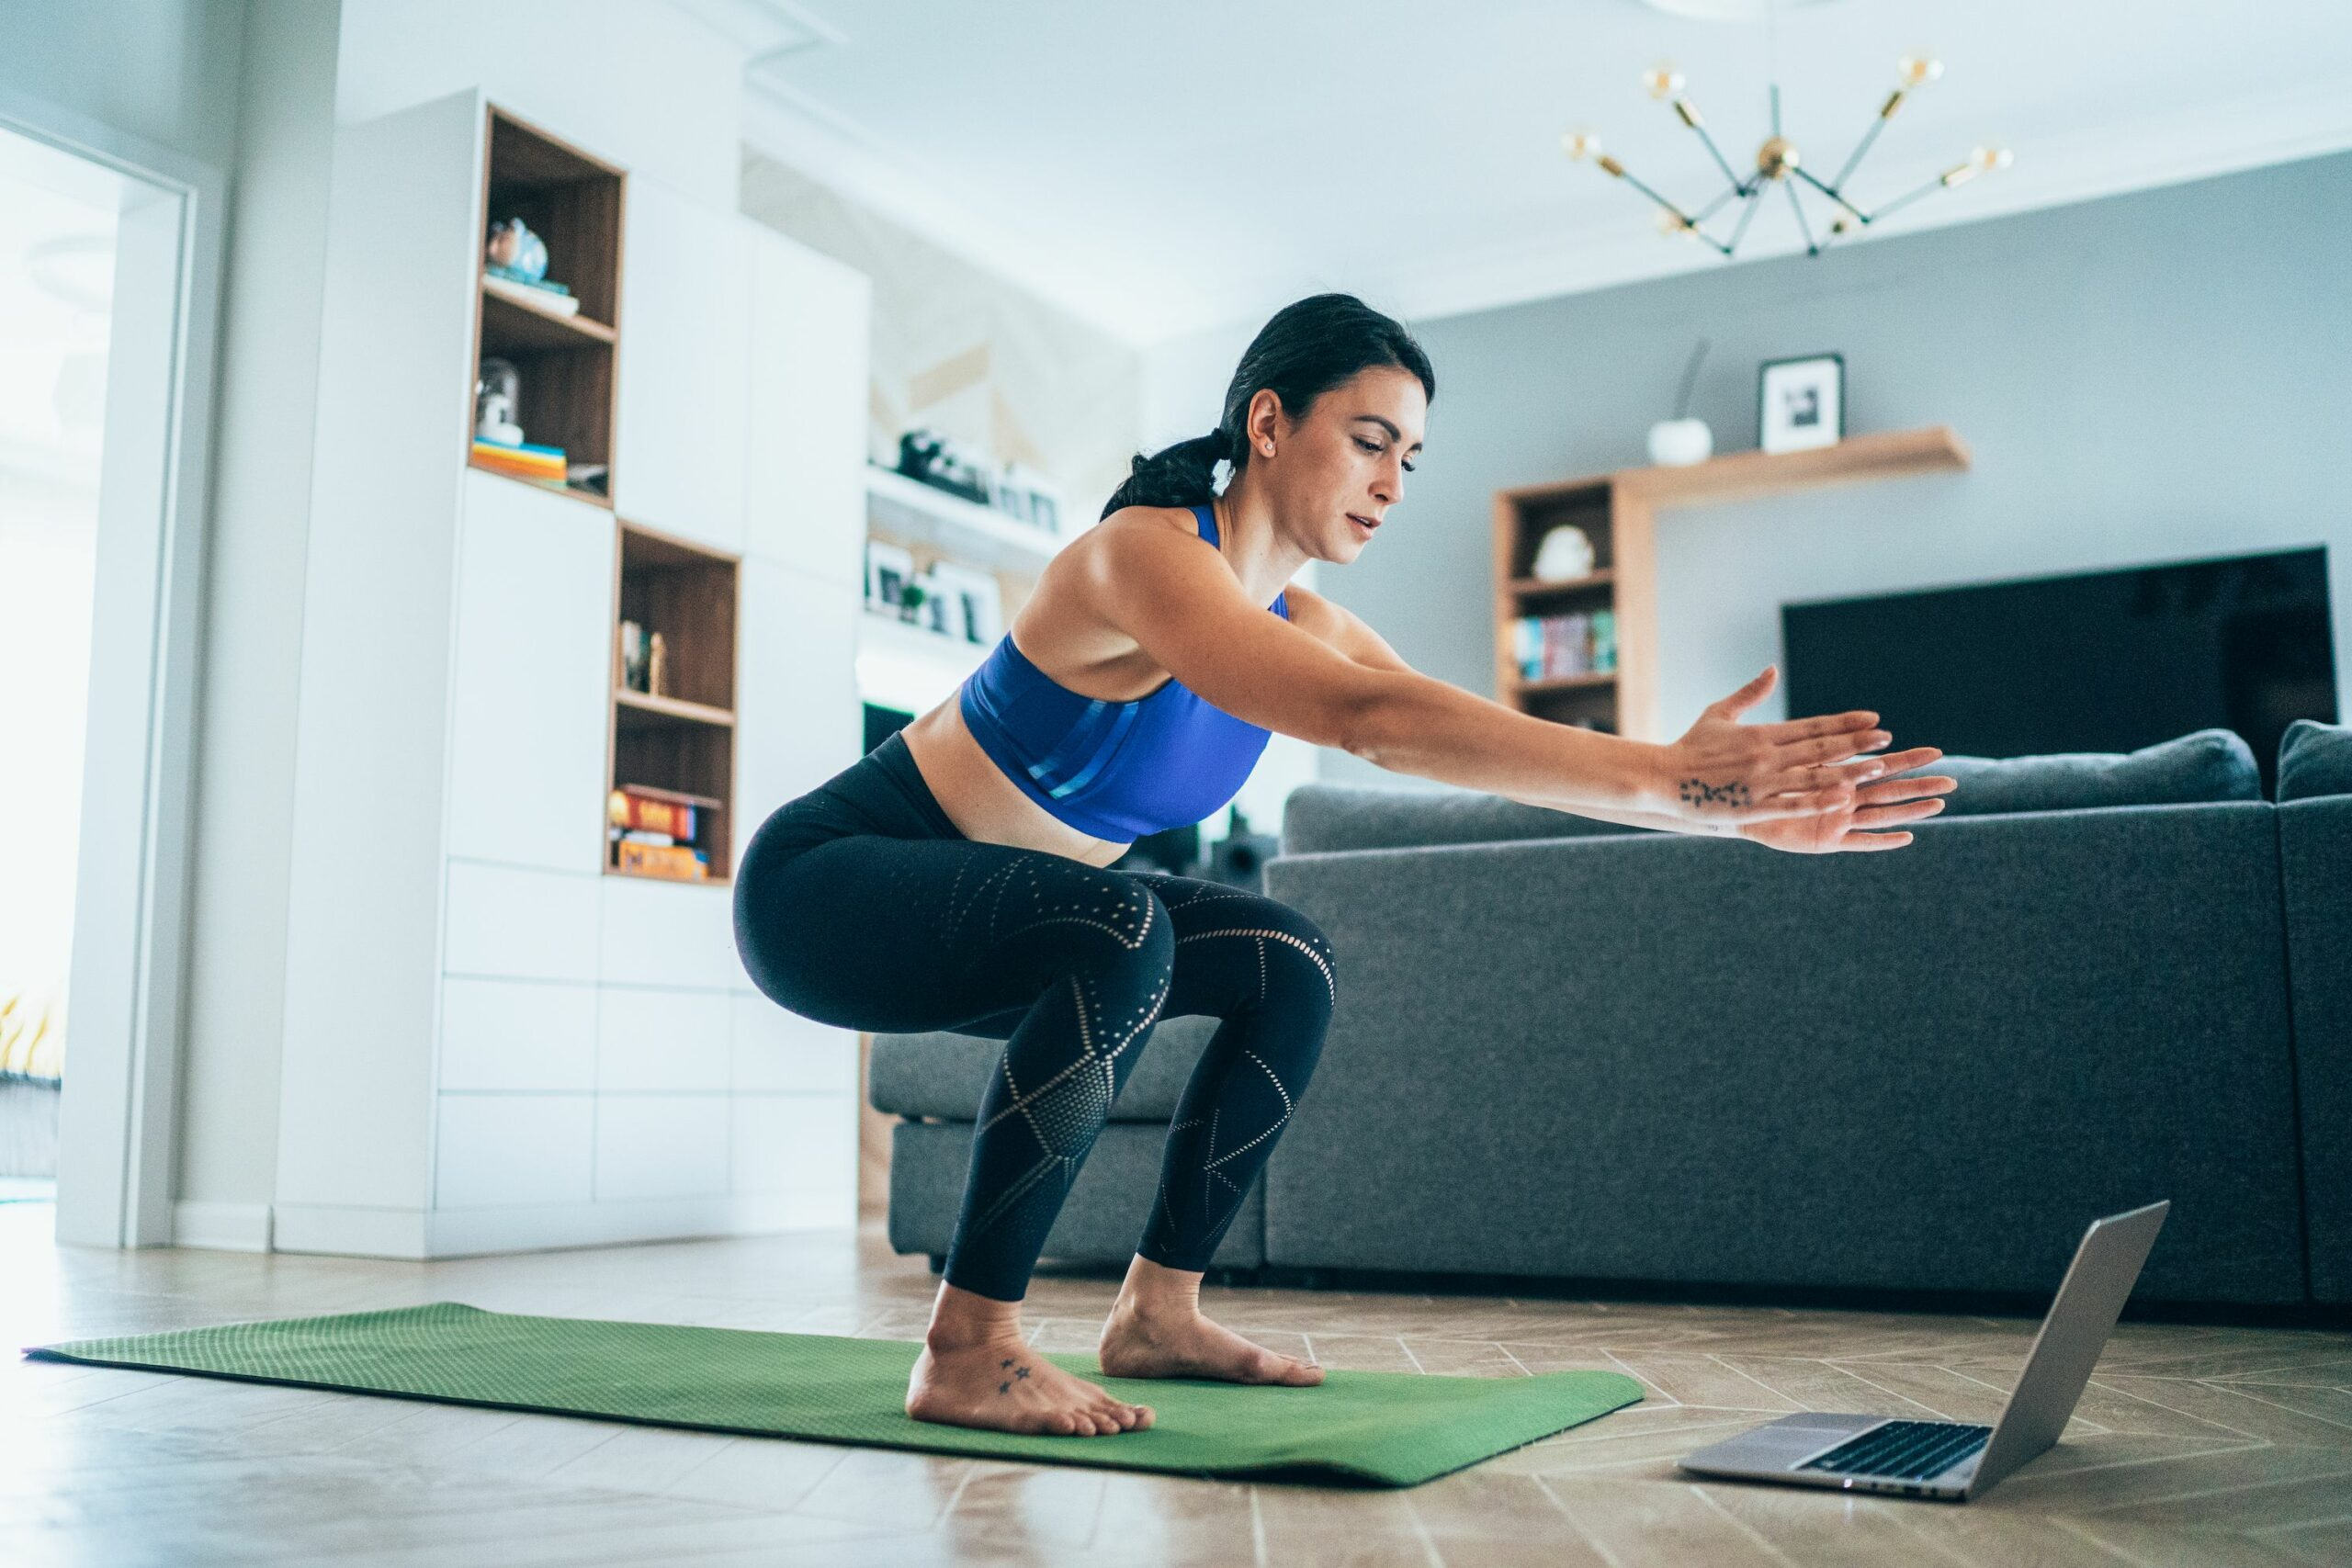 Athletic woman performing a squat in her living room while looking at a laptop screen